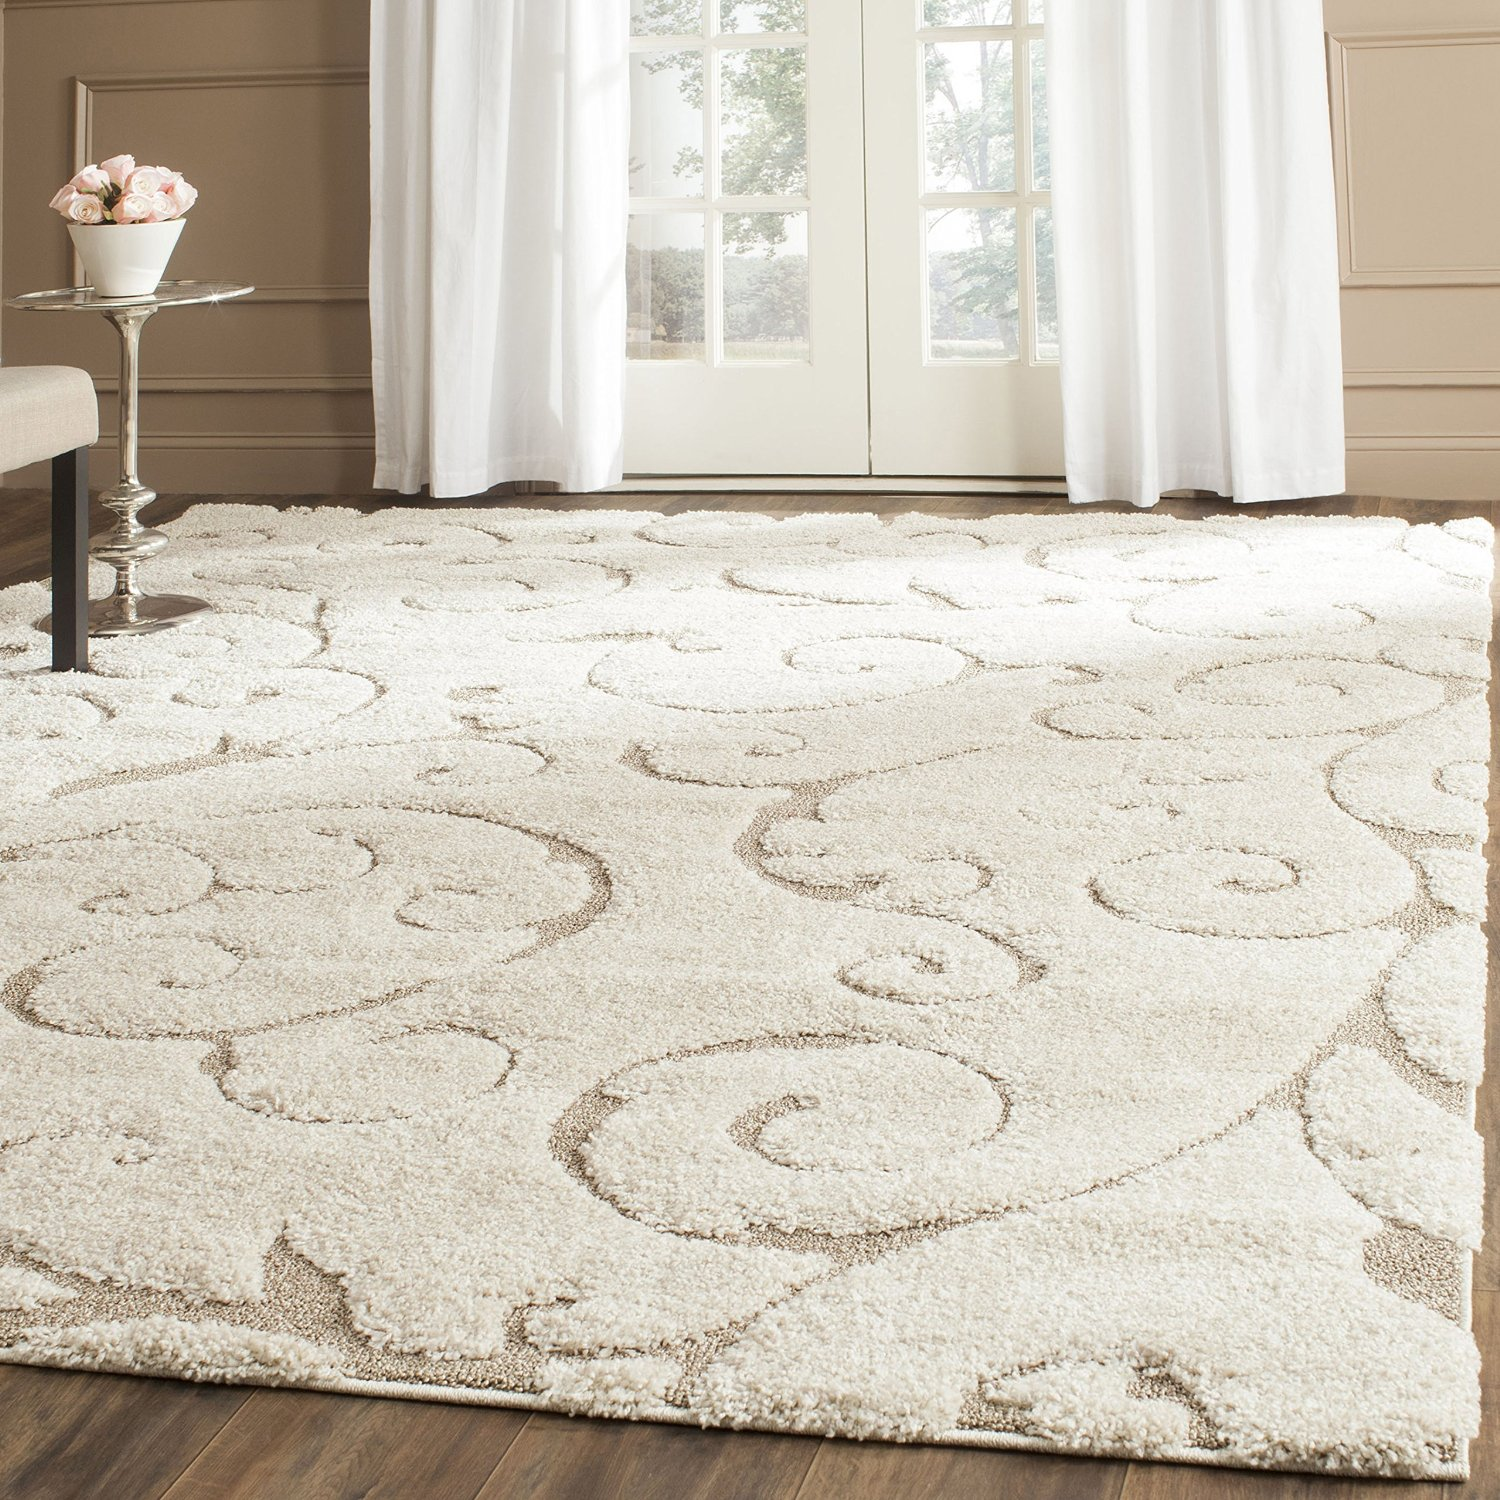 Top 10 Best Floor Carpets For Home 2019 Home Floor